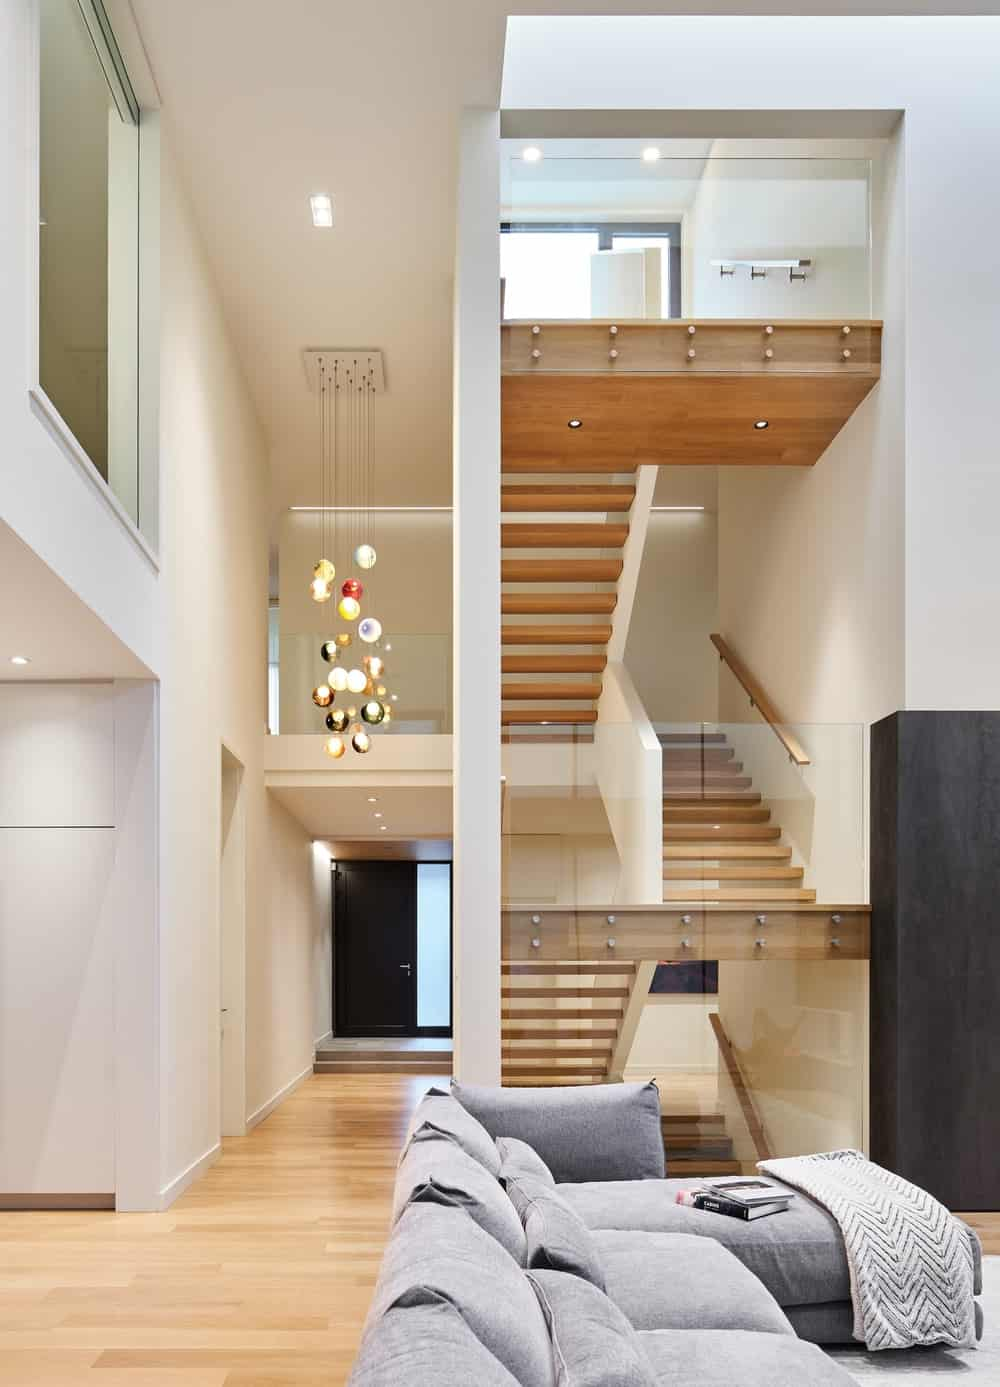 This is a view of the foyer and staircase from the vantage of the living room. You can see here that the foyer is topped with a tall ceiling that has a decorative chandelier.